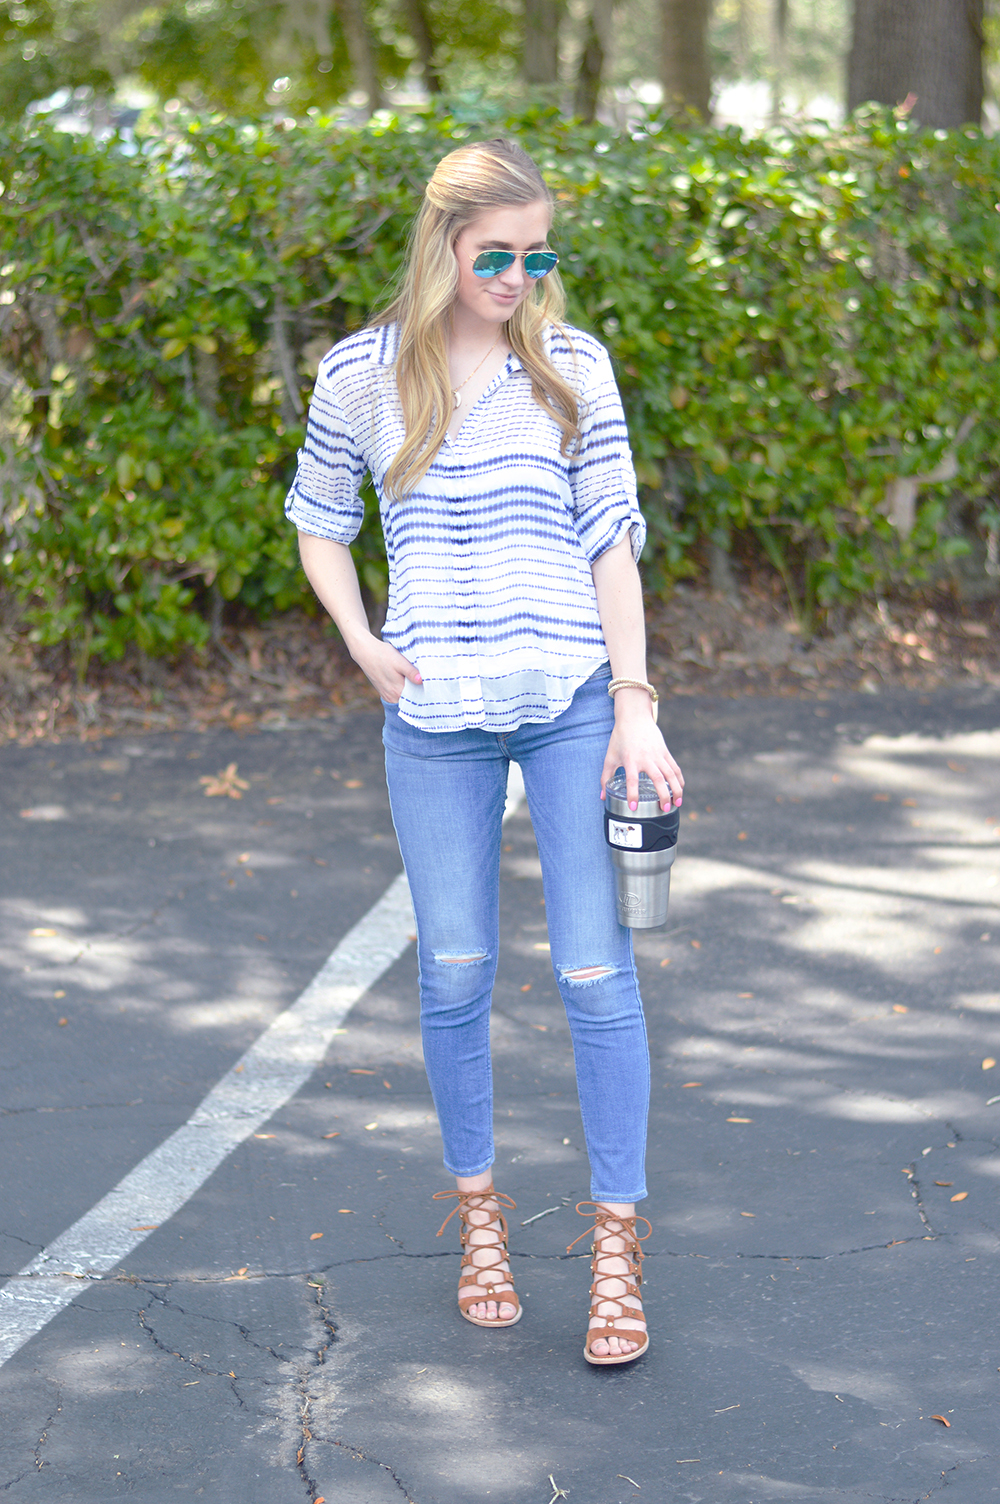 styelled blog, elle elisabeth, bella dahl, the lost society, ray ban, tie dye, 7 for all mankind, 7 jeans, summer style, summer trends, style blogger, fashion blogger, dolce vita - 3